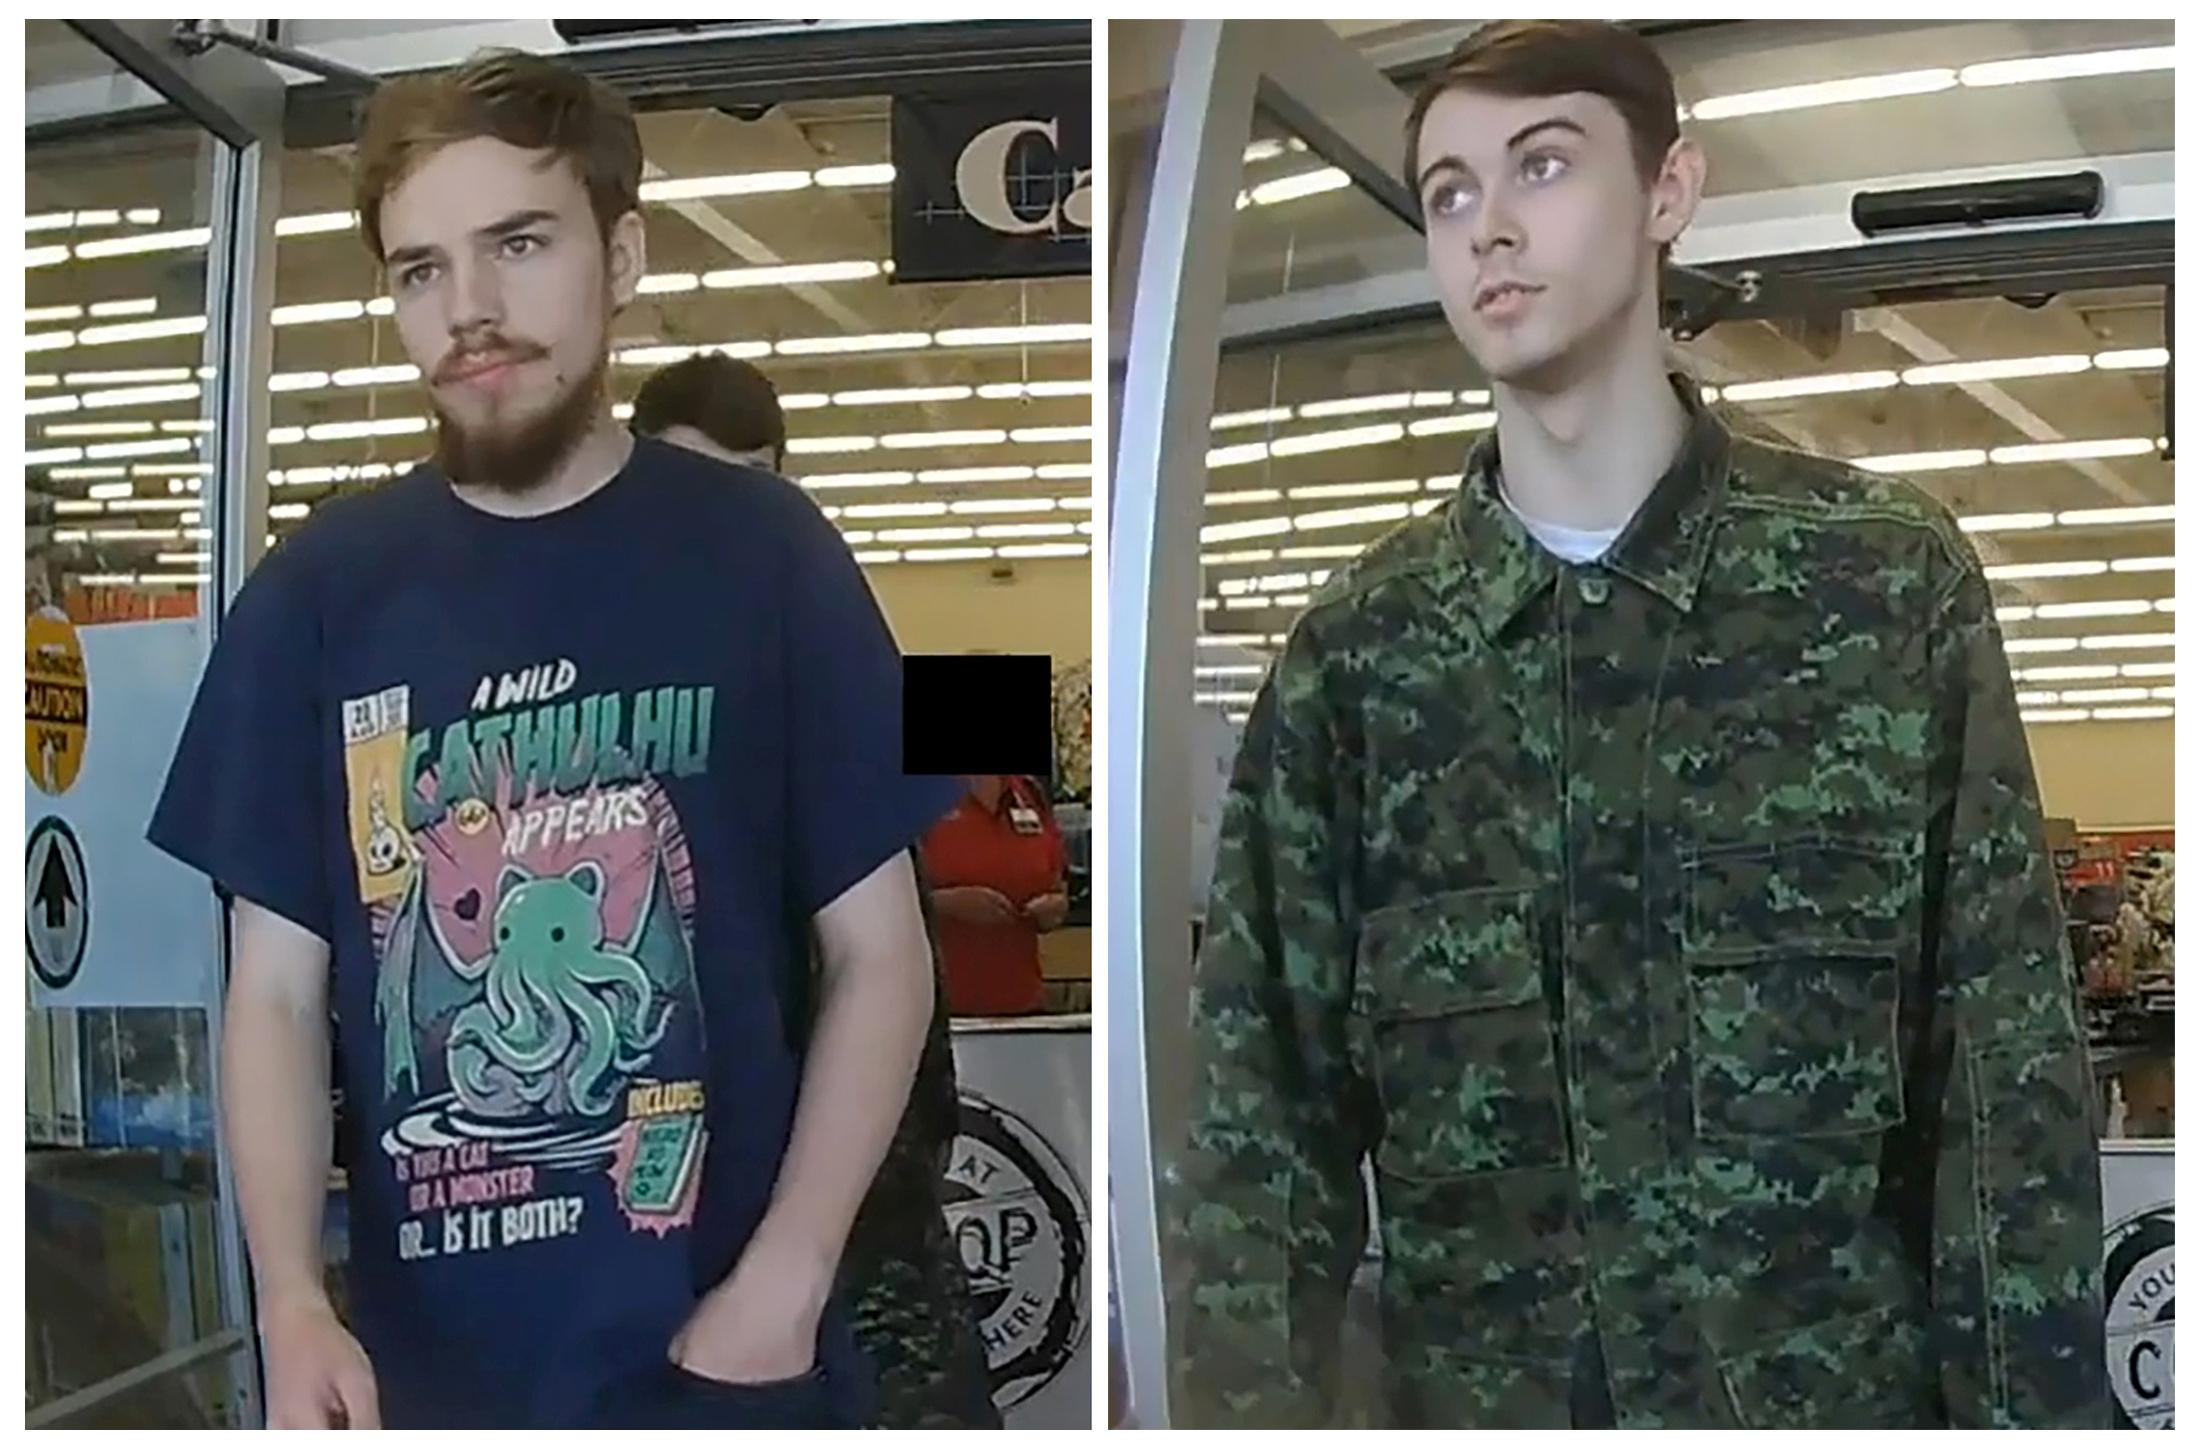 Canadian fugitives suspected in three murders die by suicide: police